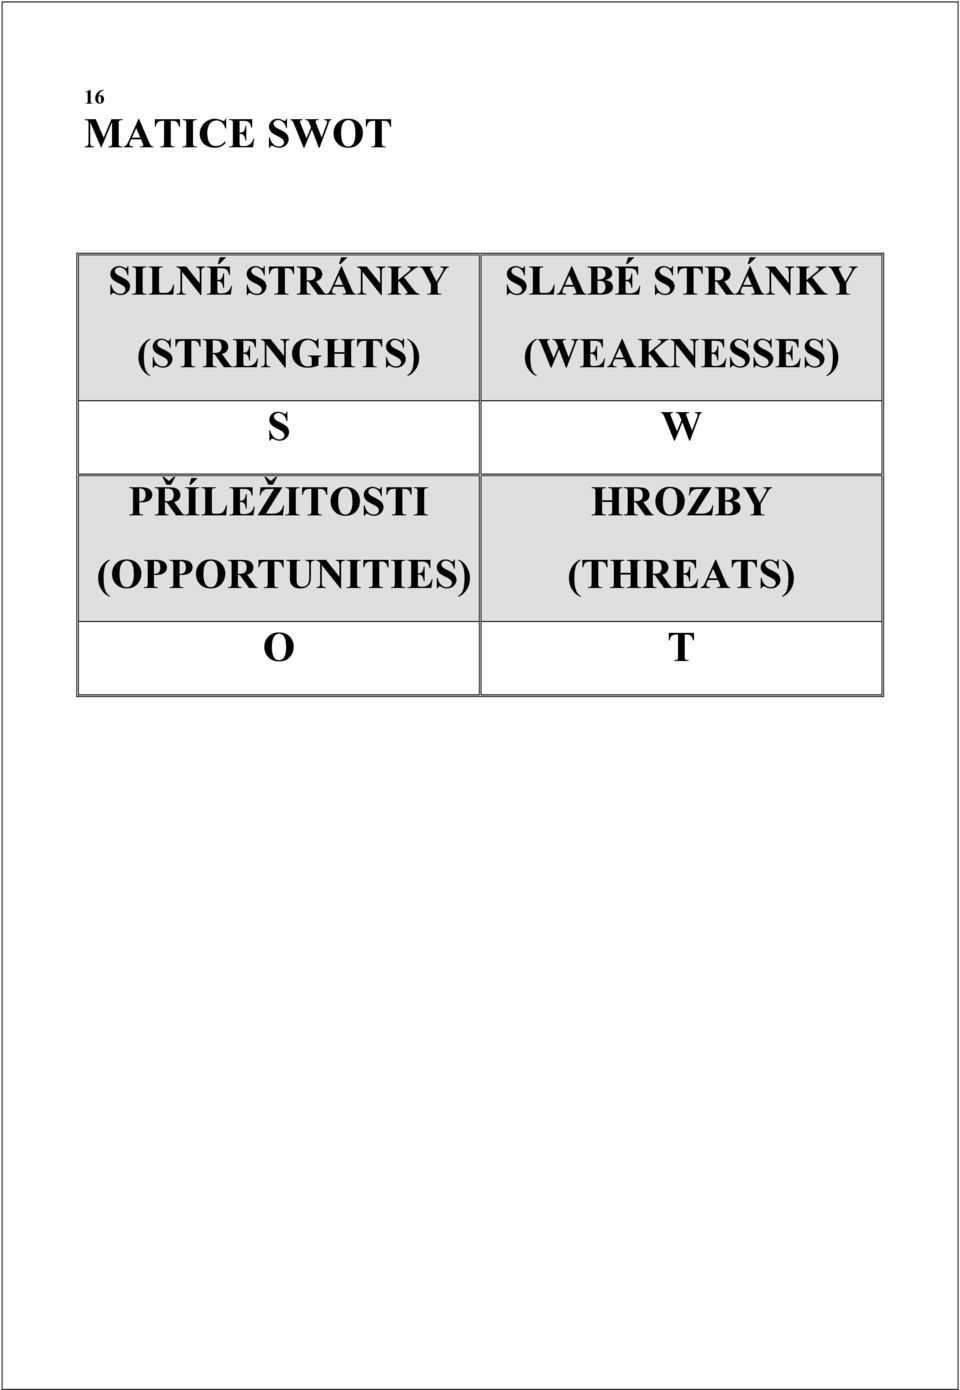 (OPPORTUNITIES) O SLABÉ